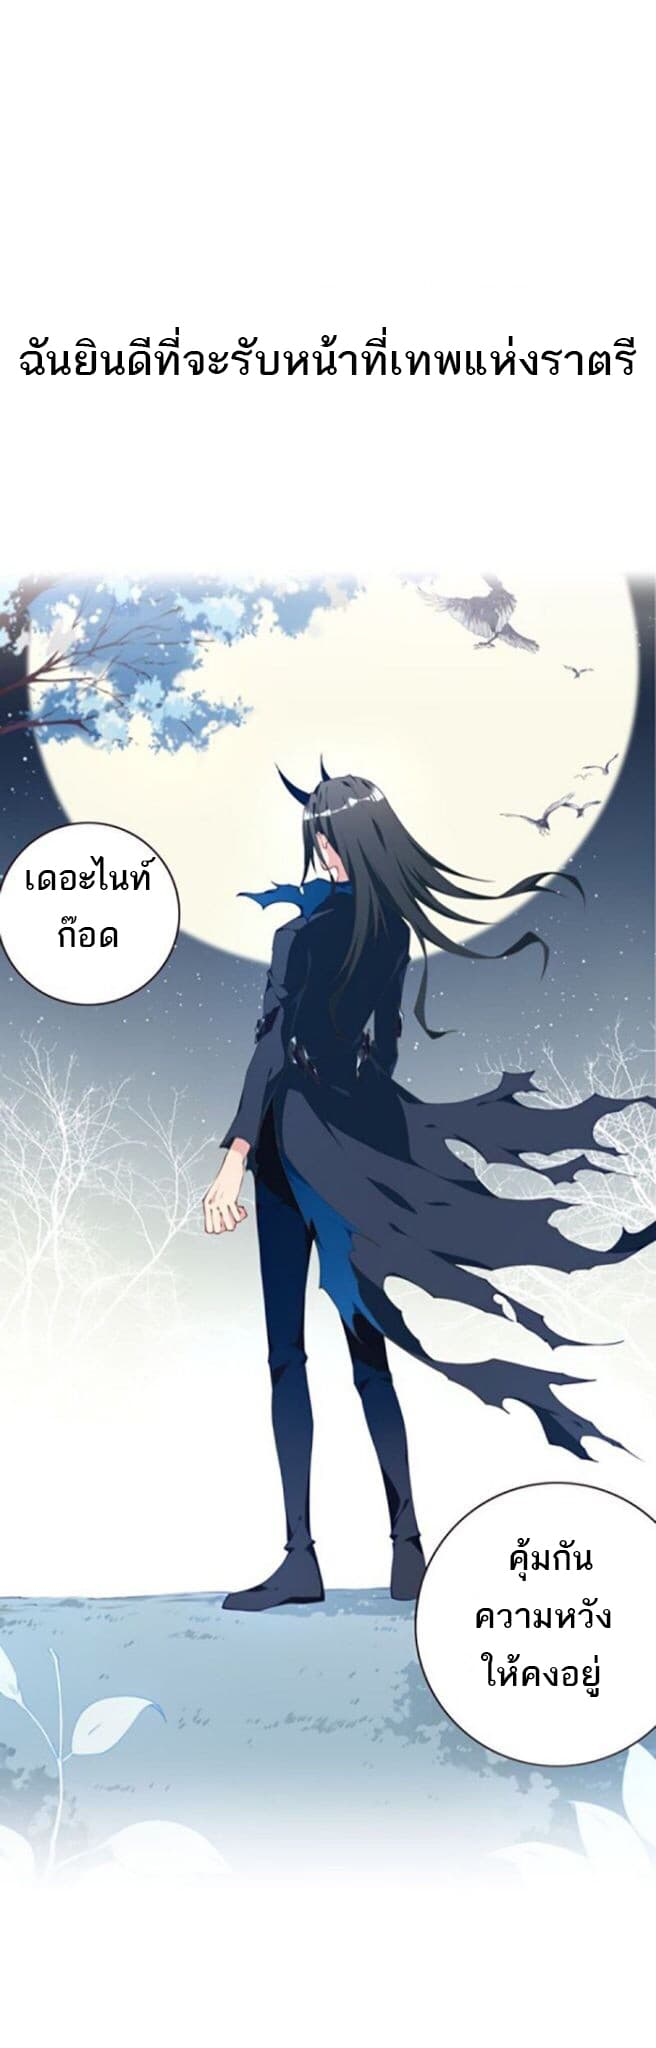 The Night God - หน้า 12